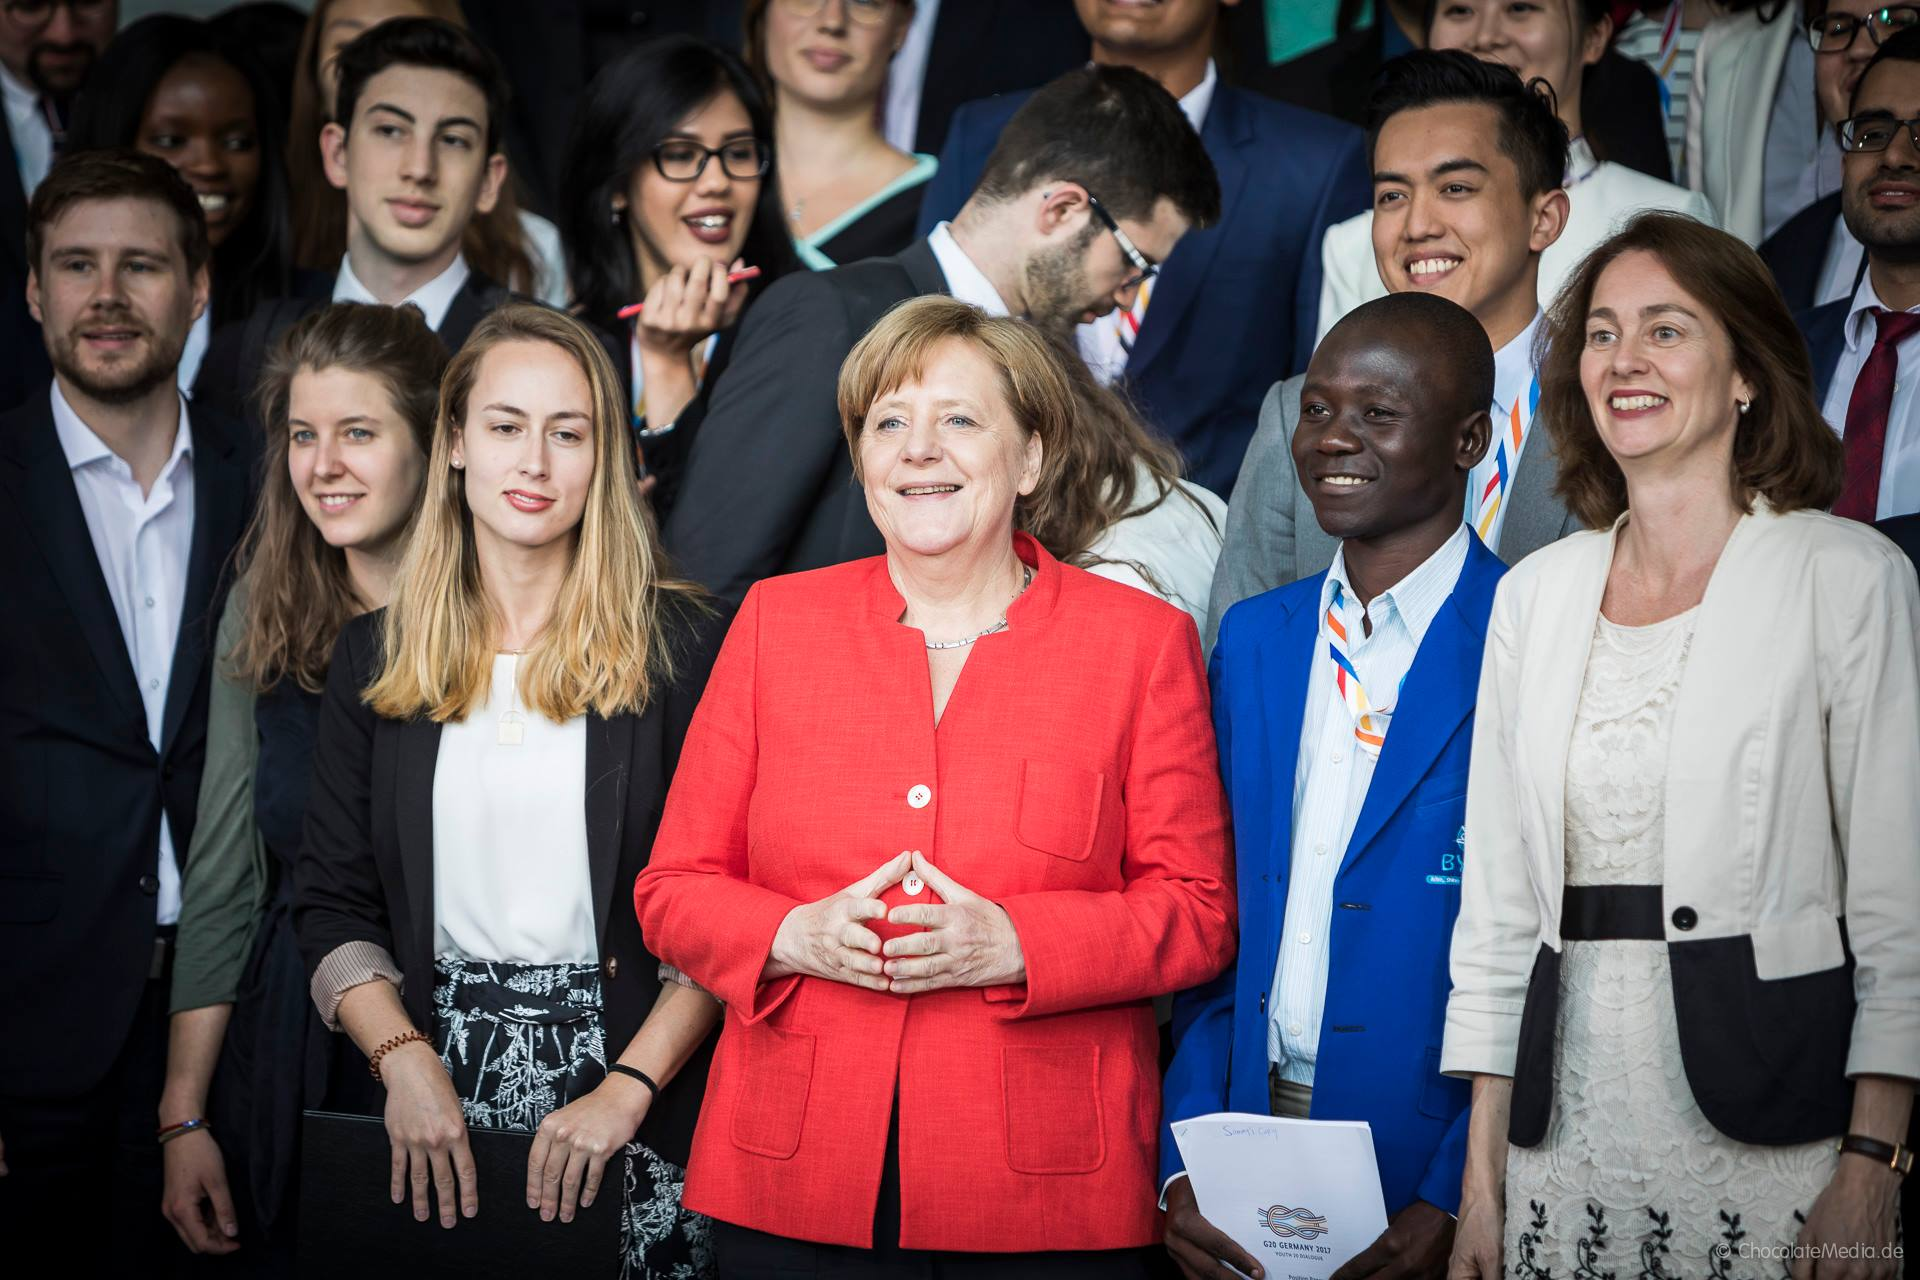 Samuel and others with Angela Merkel at Youth 20 Dialogue